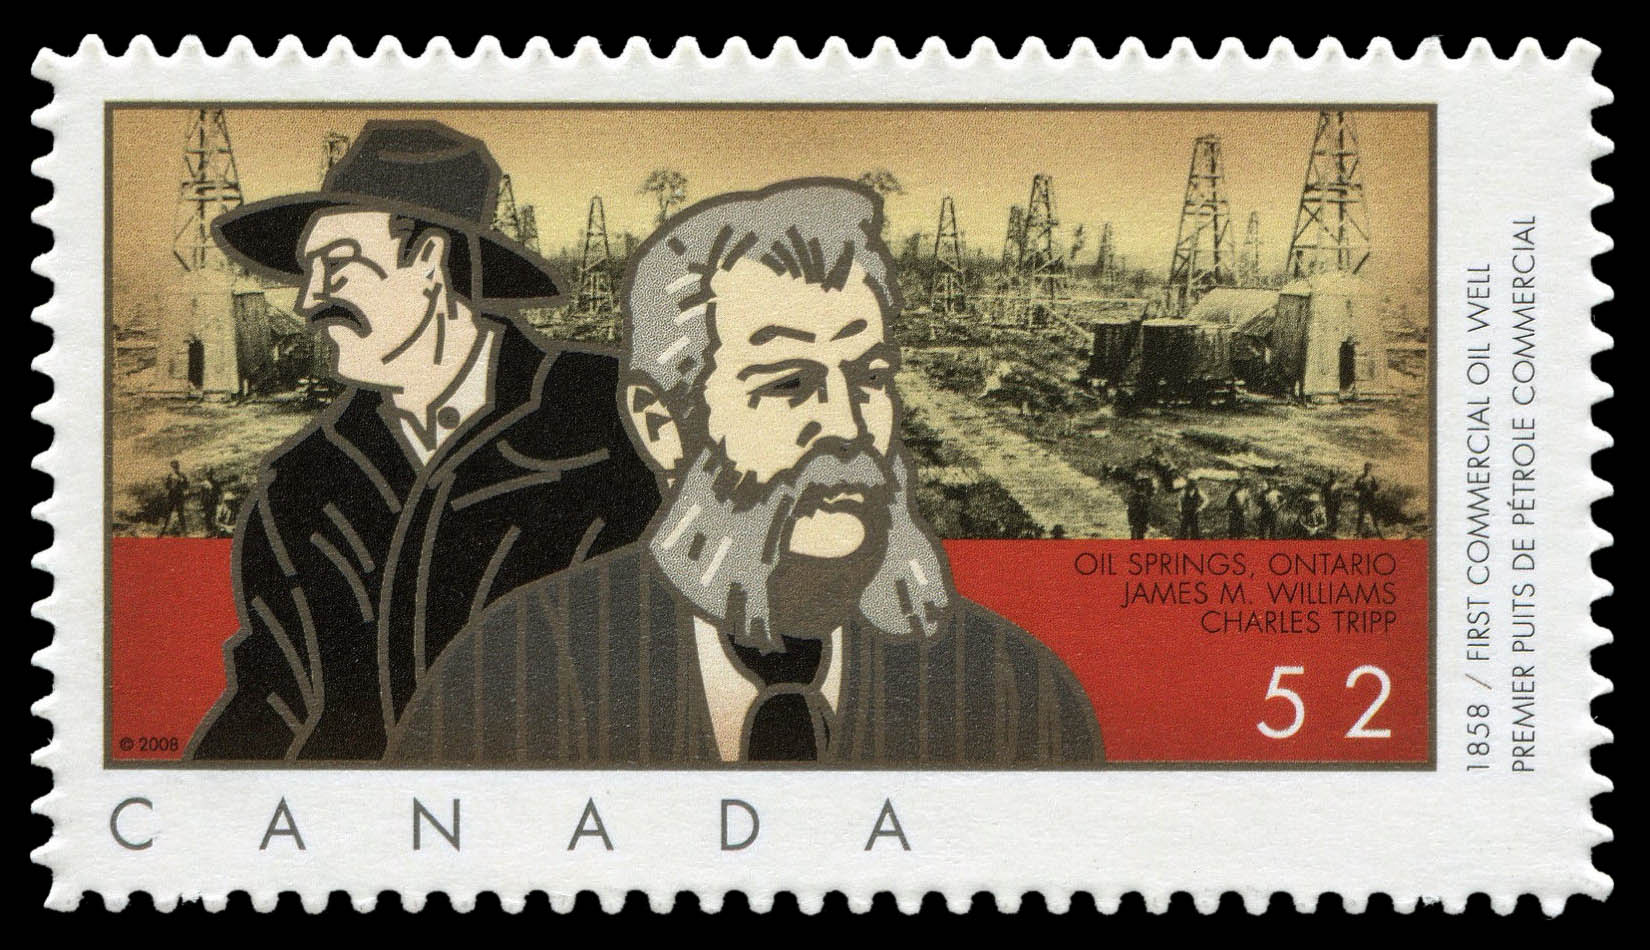 First Commercial Oil Well - 1858 Canada Postage Stamp | Industries: Oil and Gas